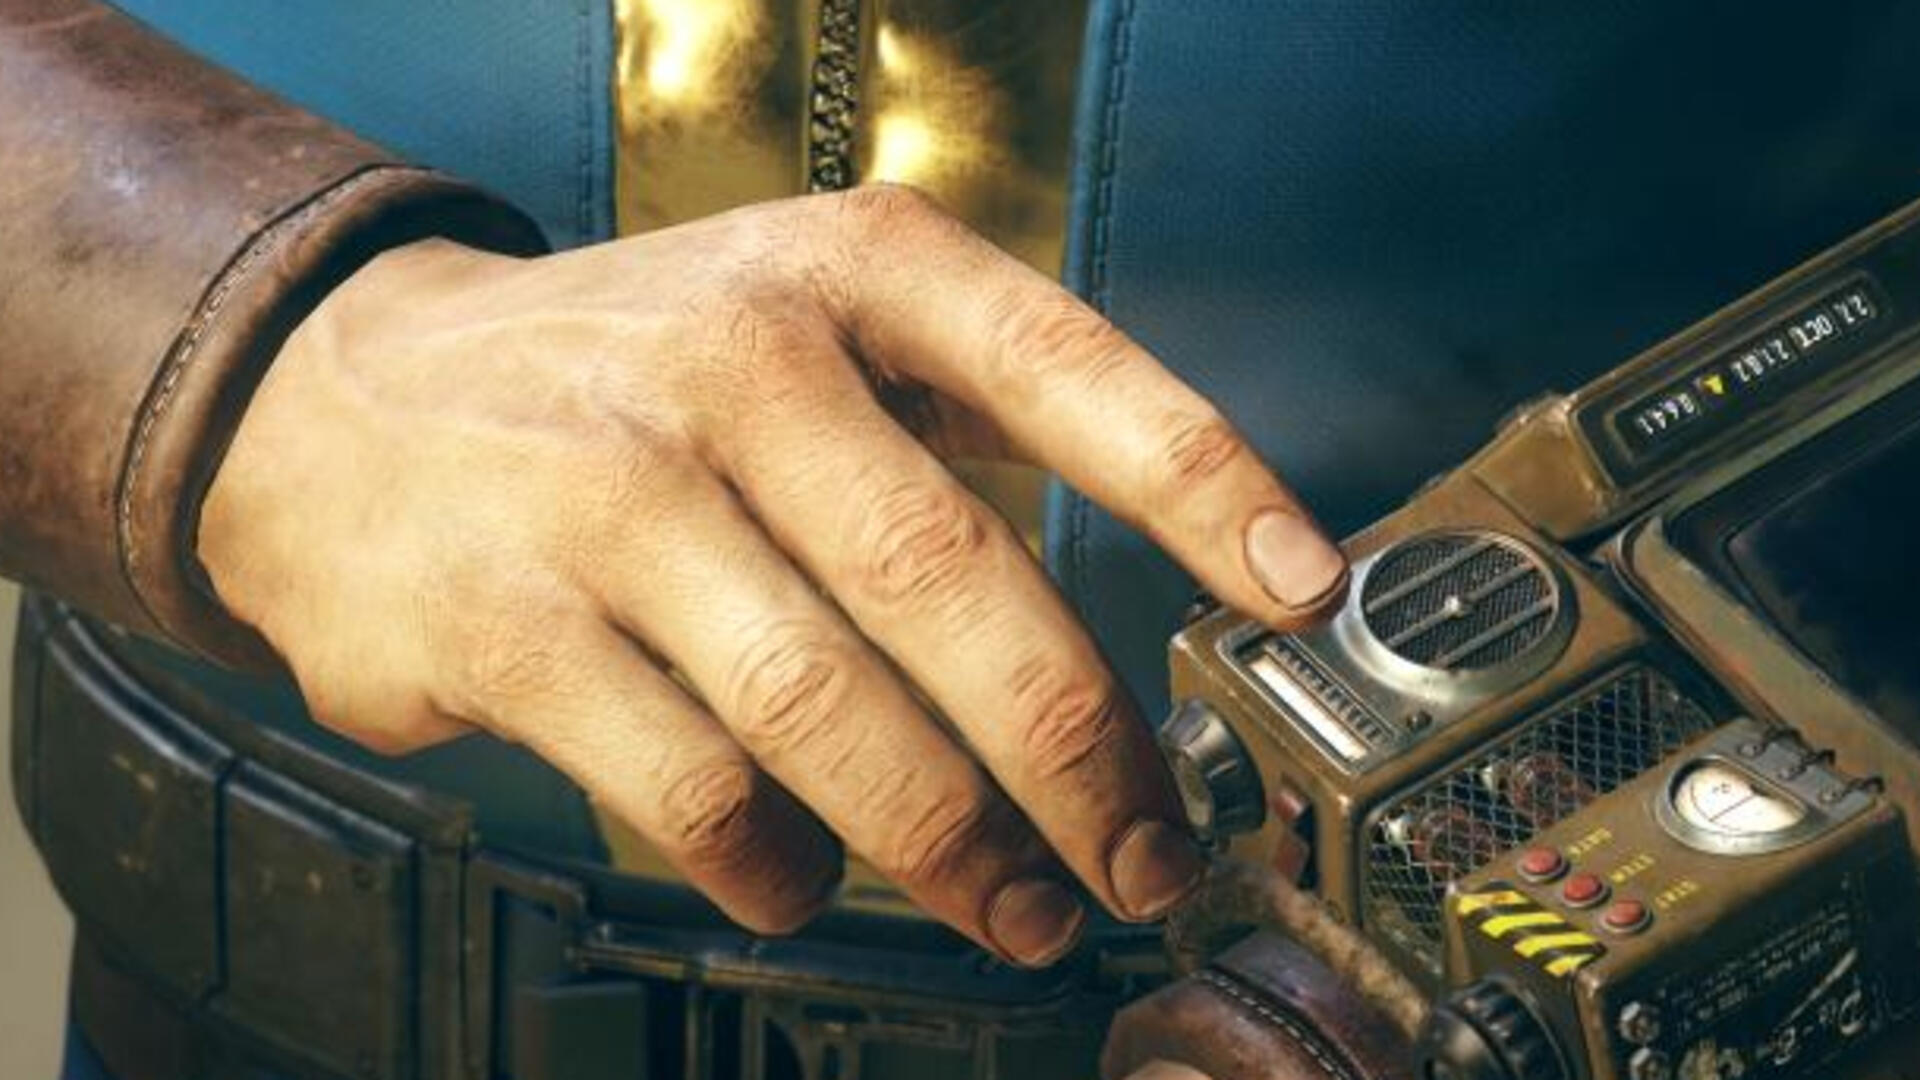 Fallout 76 Beta PC Requirements Show That It Should Run on Most Systems